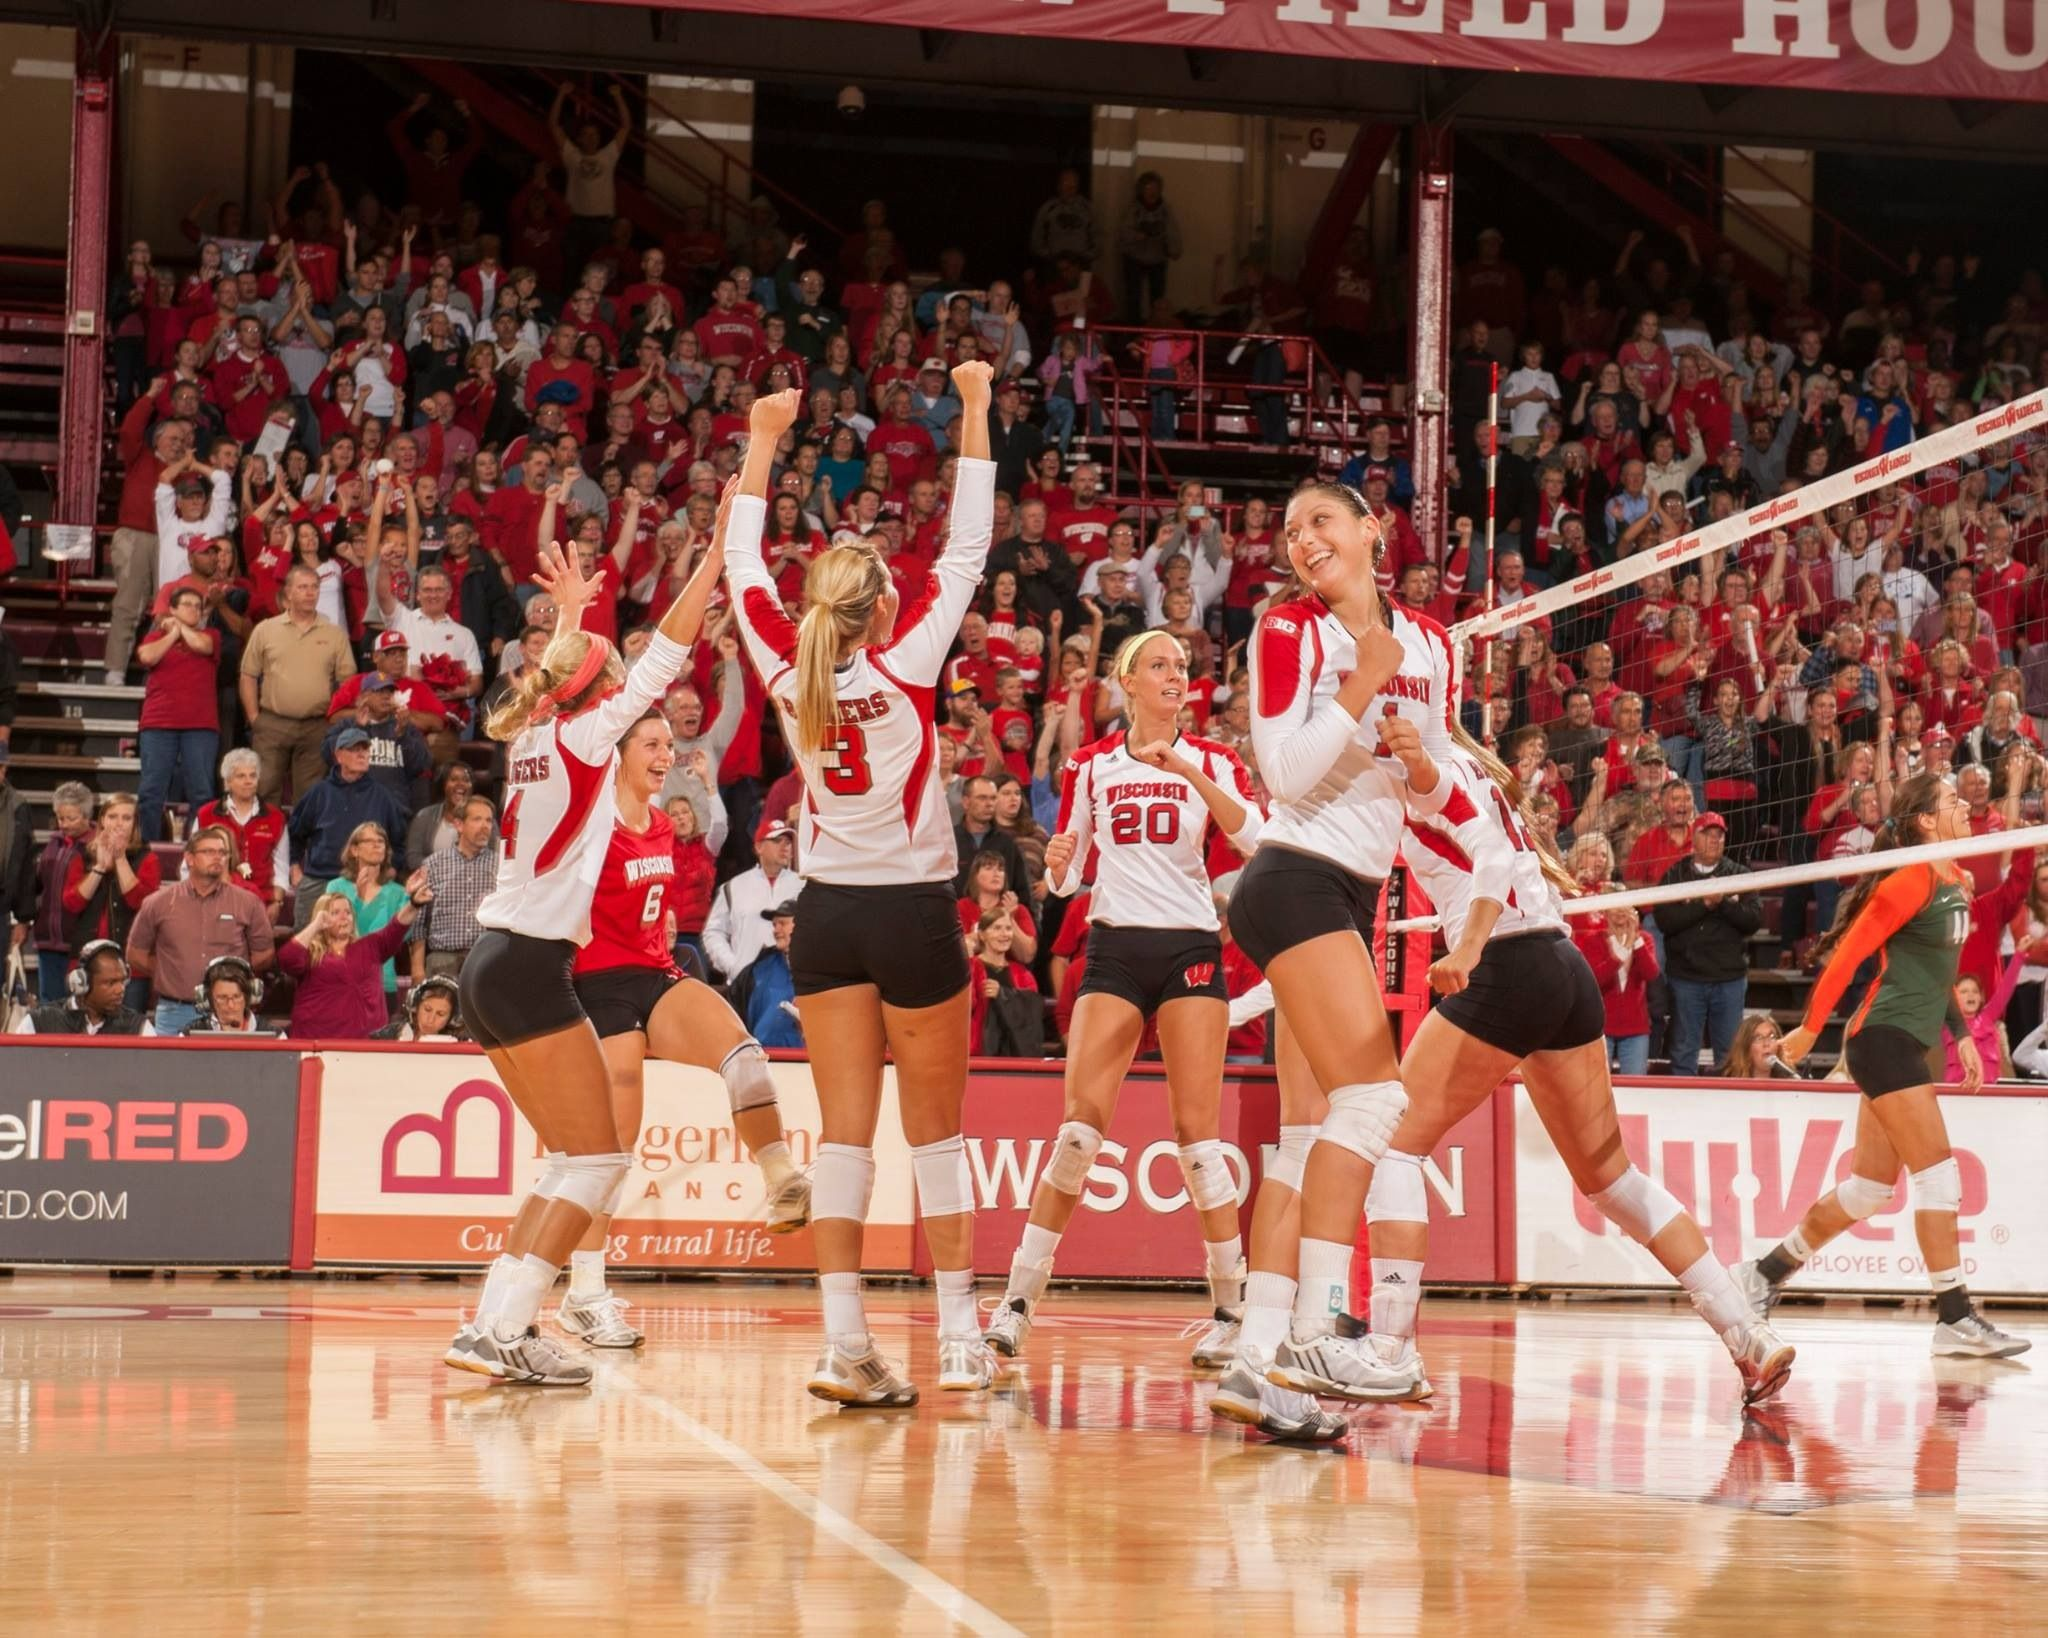 Volleyball Badgers Winning Happy This Is Life With Images Life Sports Basketball Court